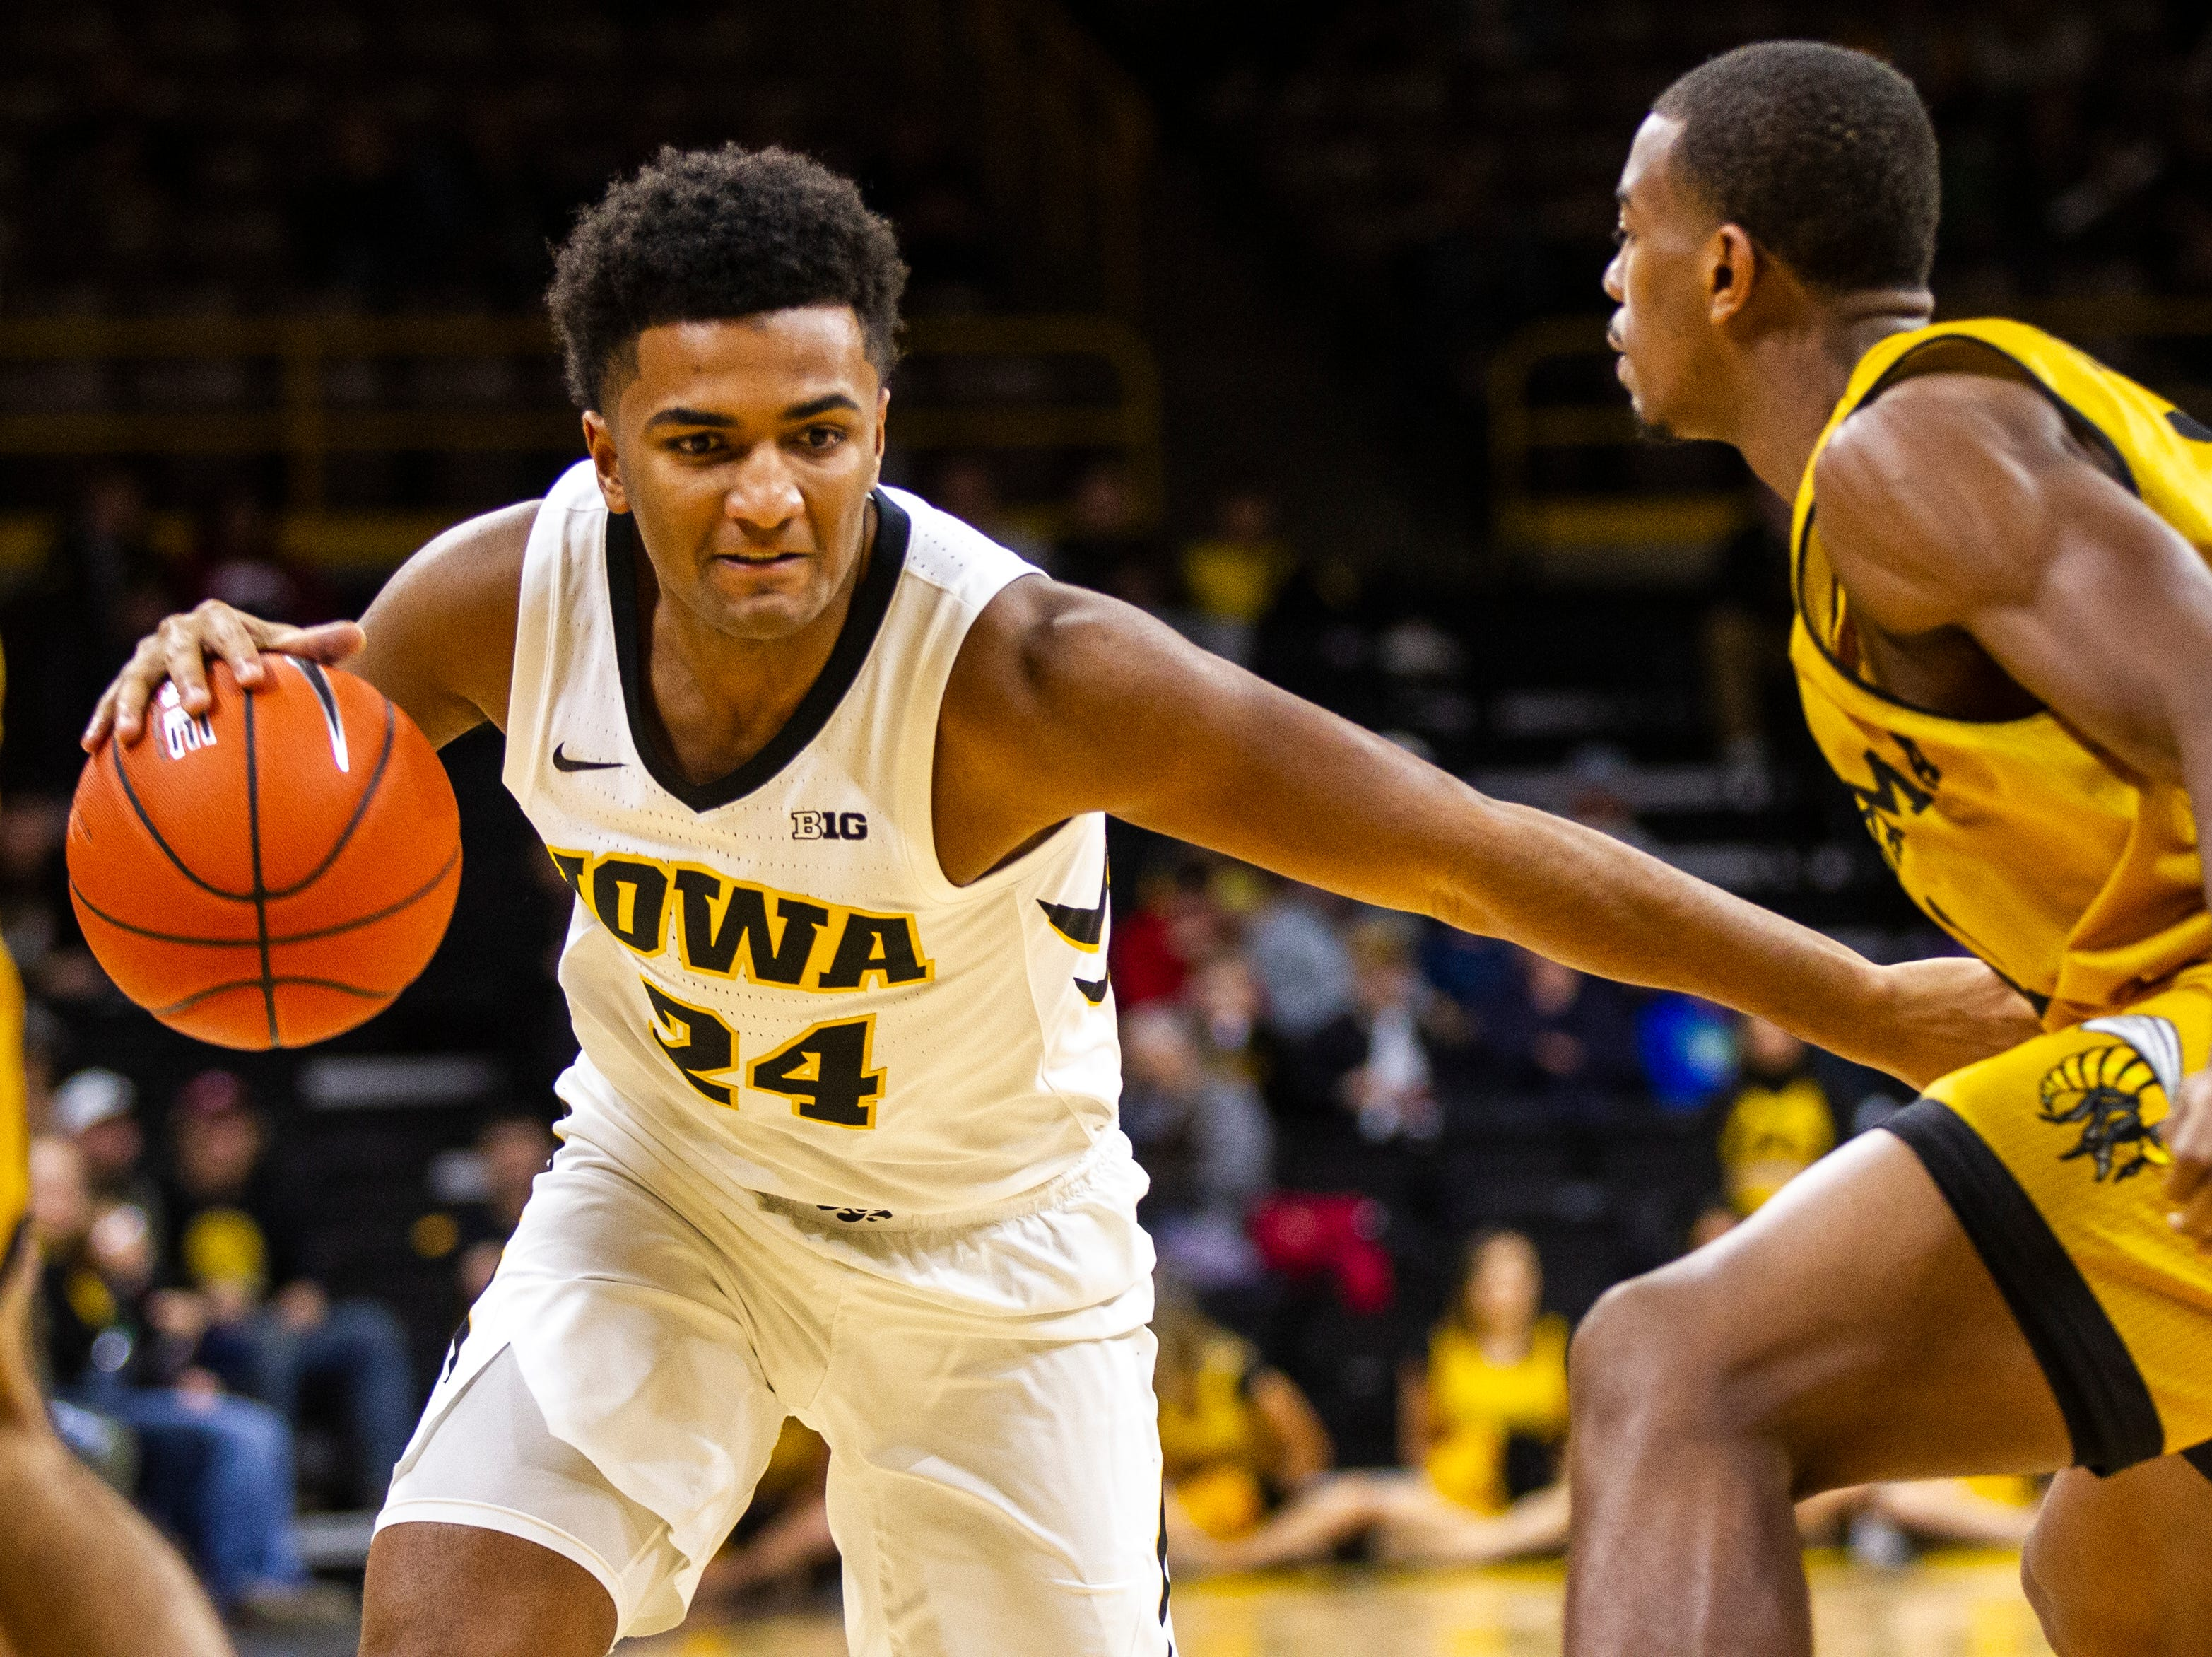 Iowa guard Nicolas Hobbs (24) drives to the hoop during an NCAA men's basketball game on Wednesday, Nov. 21, 2018, at Carver-Hawkeye Arena in Iowa City.